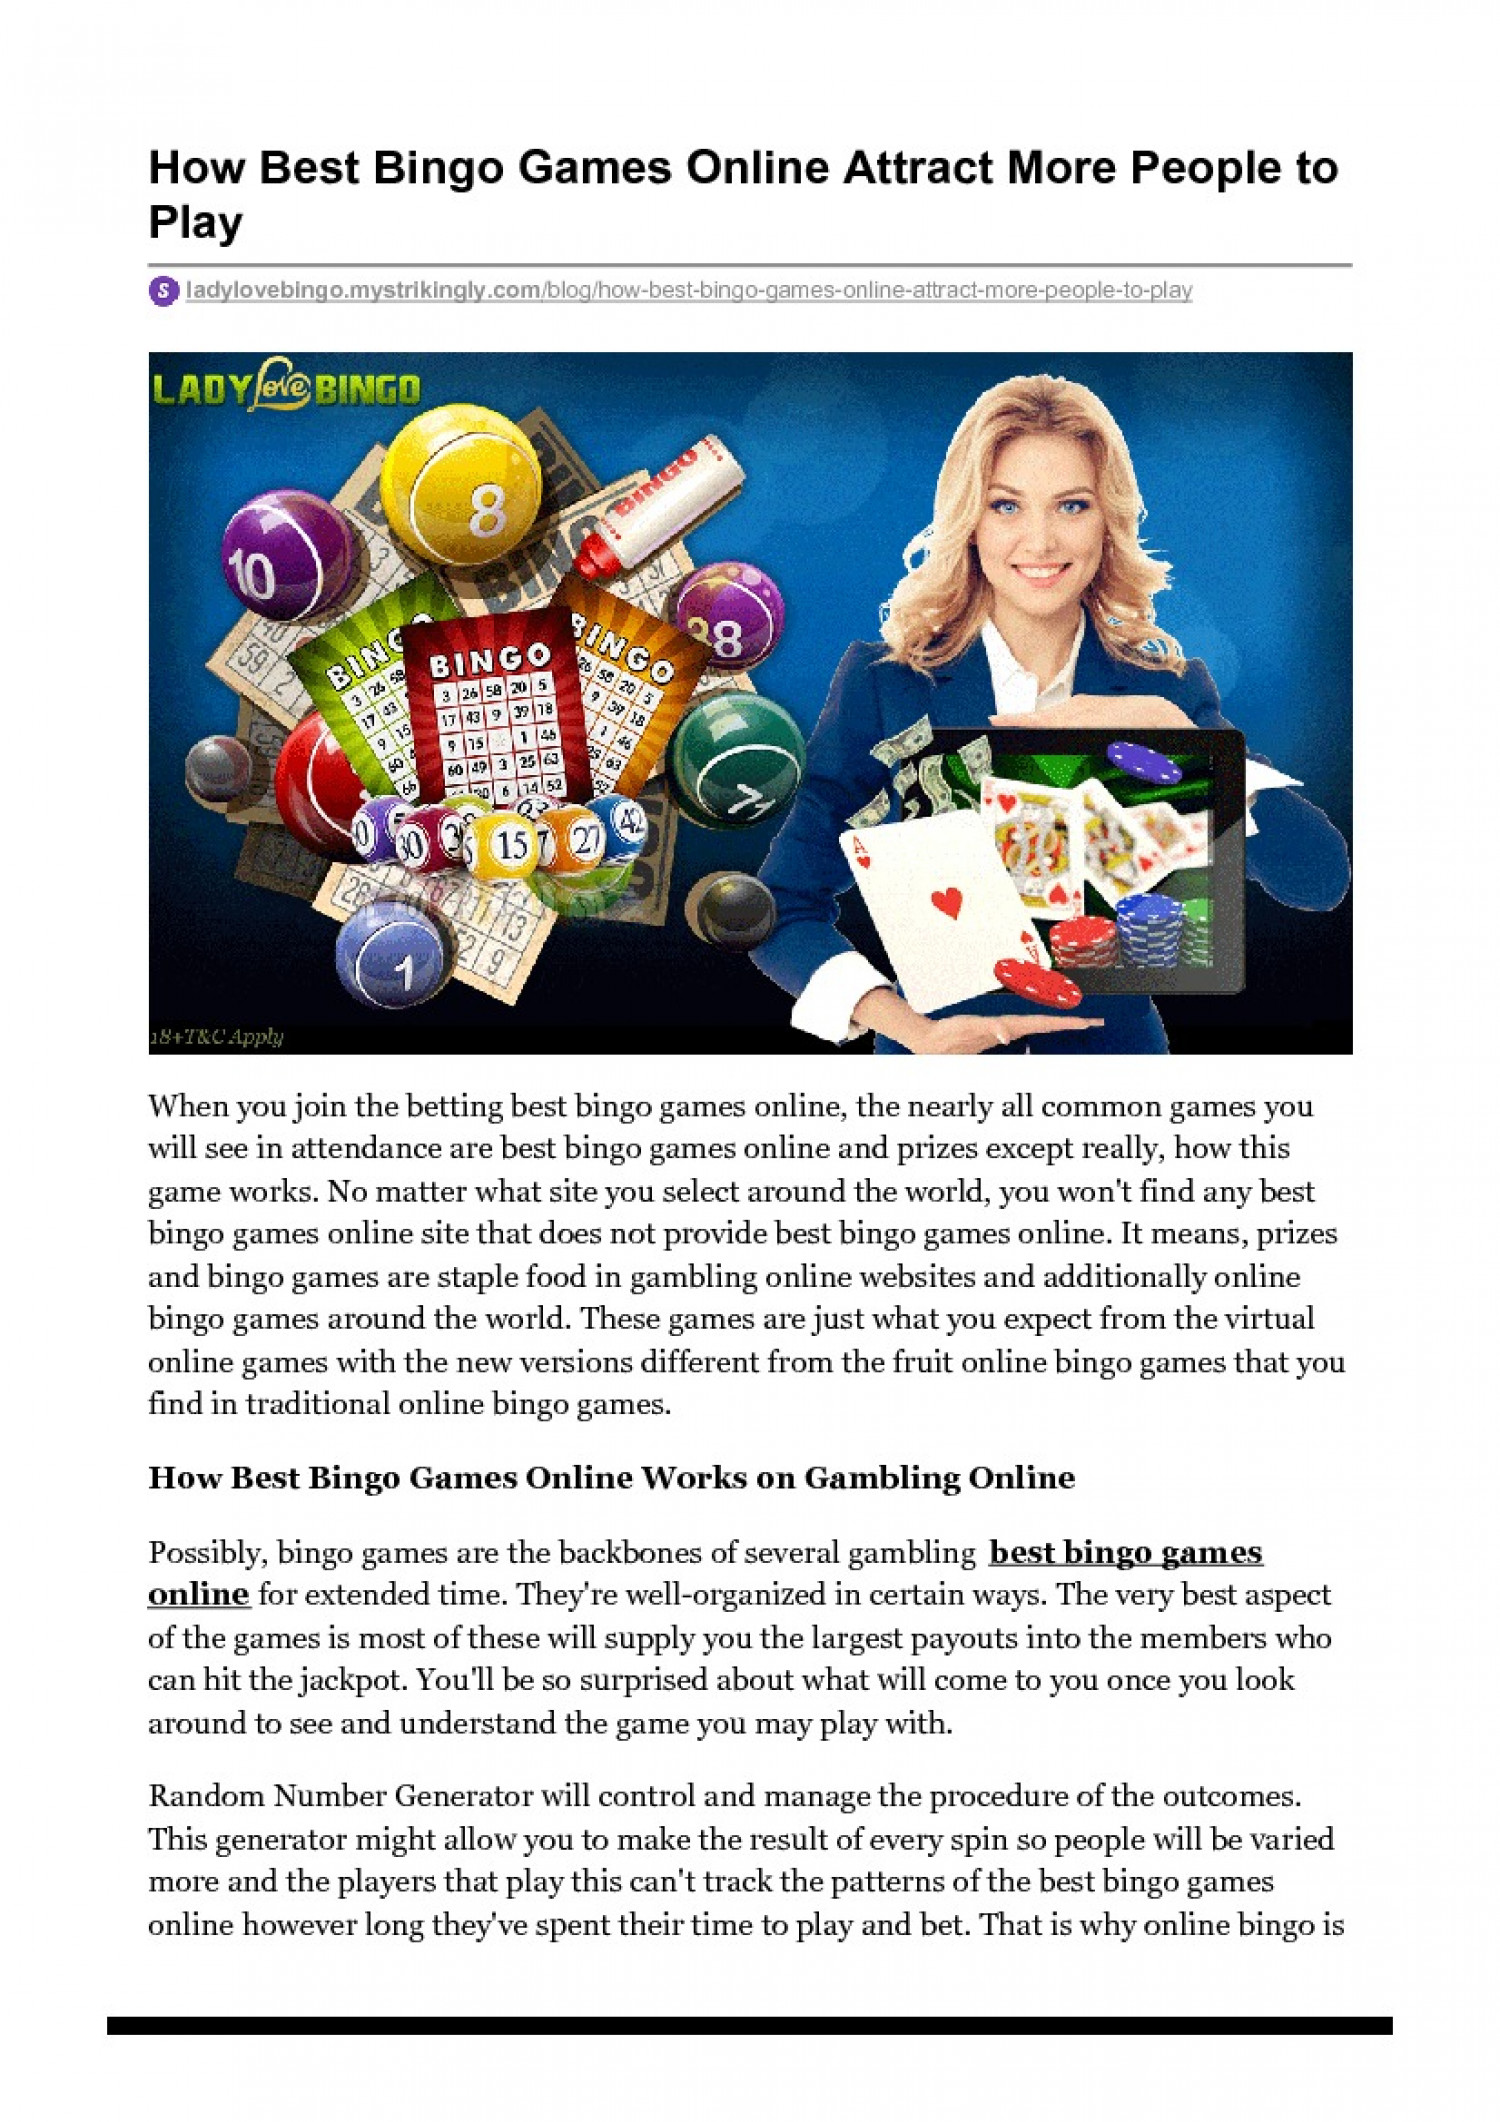 How Best Bingo Games Online Attract More People to Play Infographic